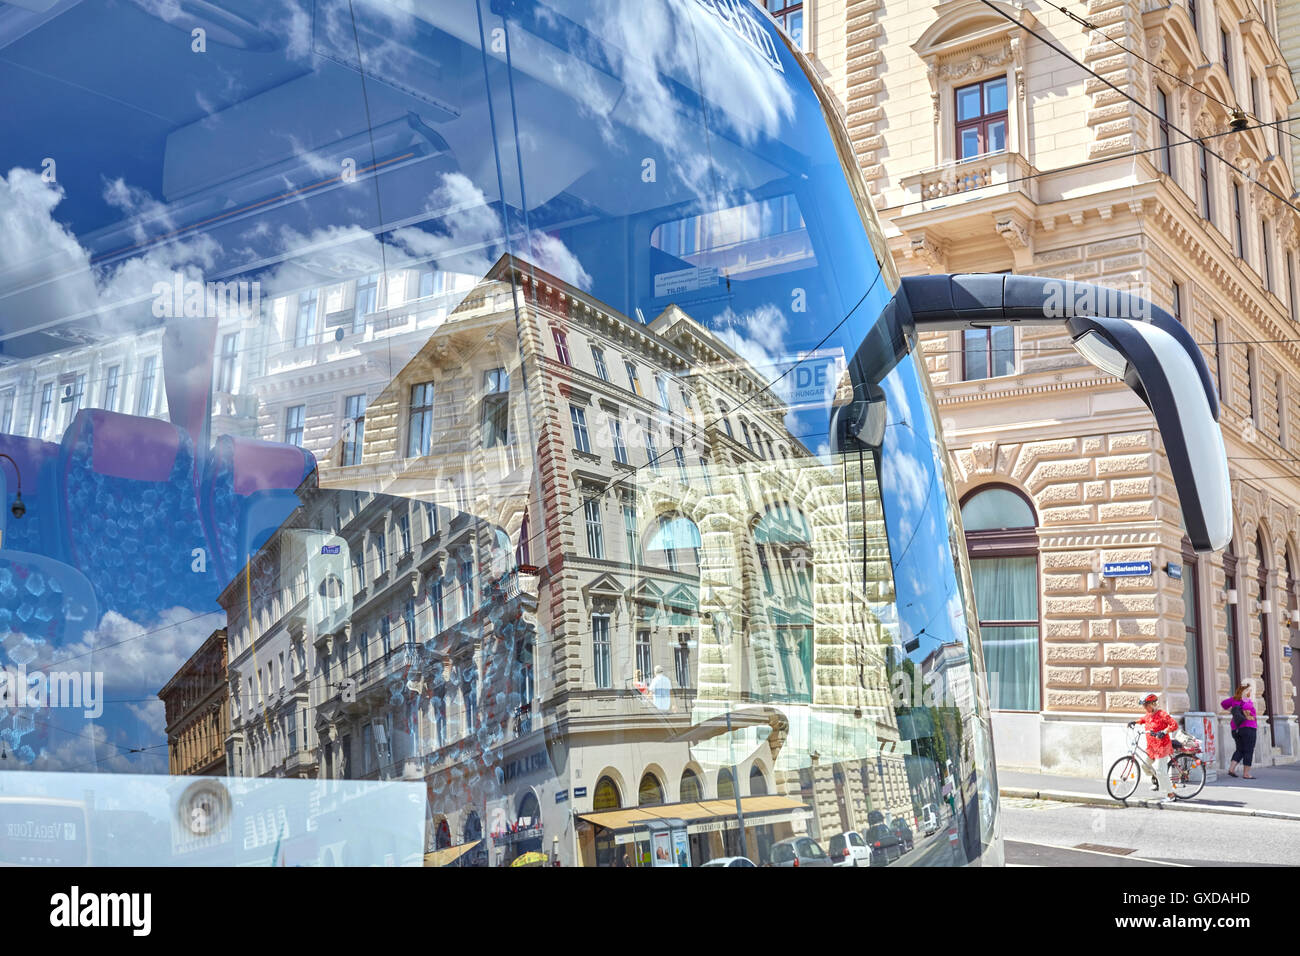 Vienna, Austria - August 14, 2016: Buildings reflection in a tourist bus windshield parked in Vienna downtown. - Stock Image